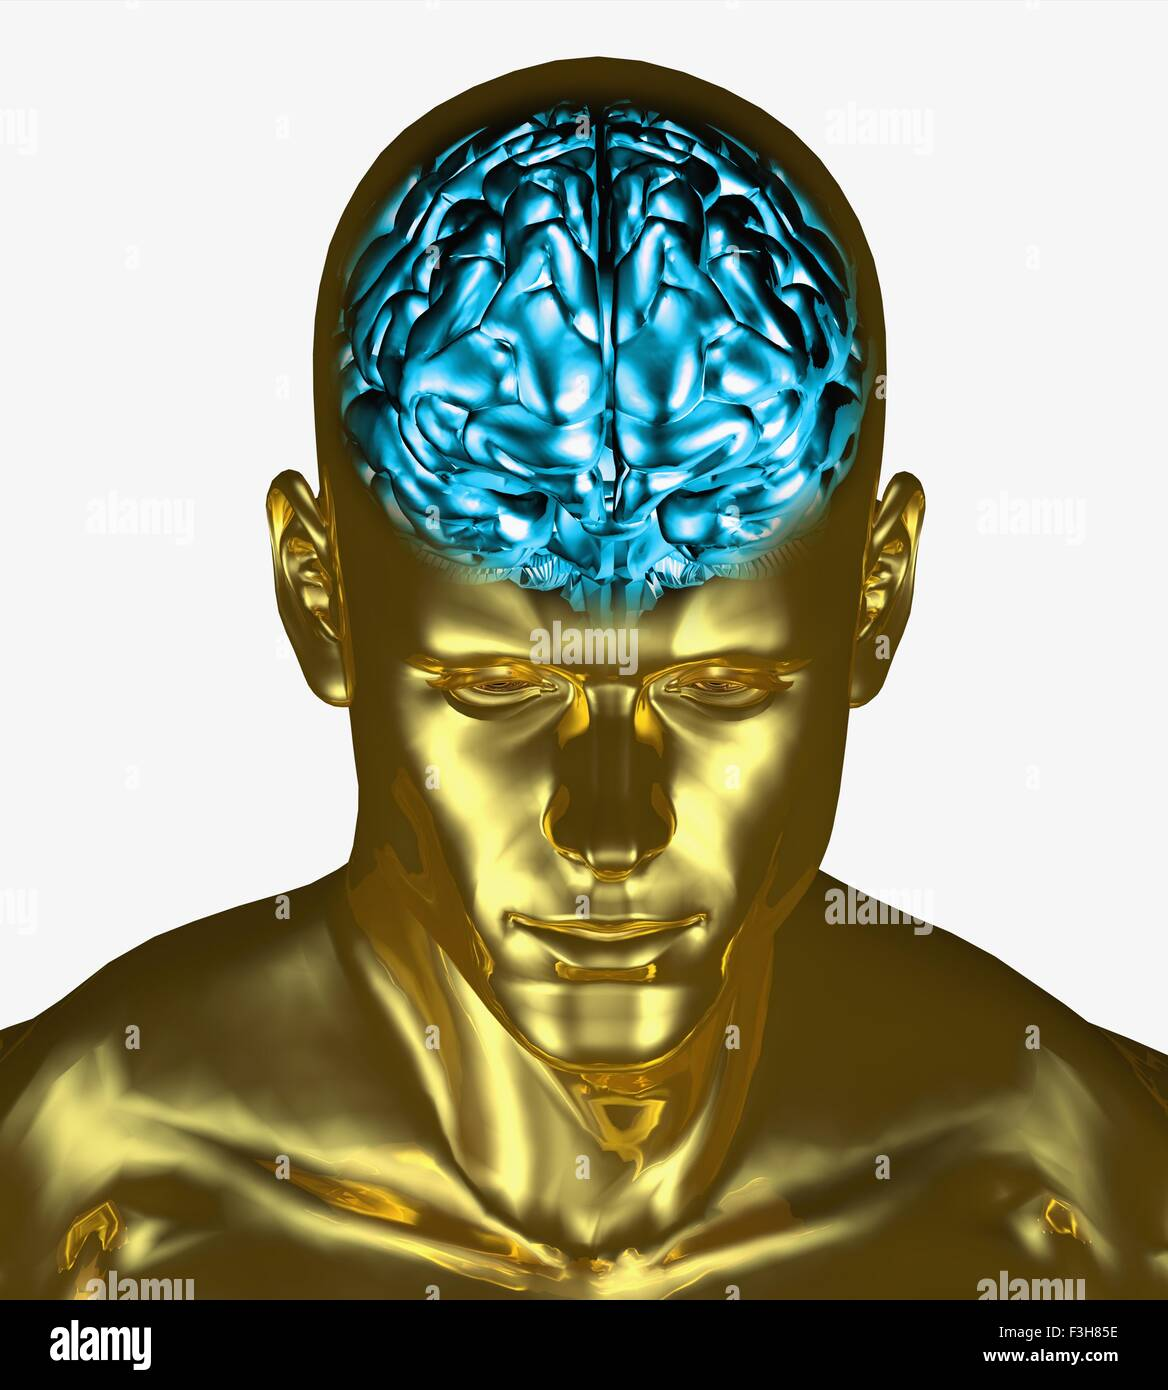 Illustration of the brain inside the skull of an adult man - Stock Image